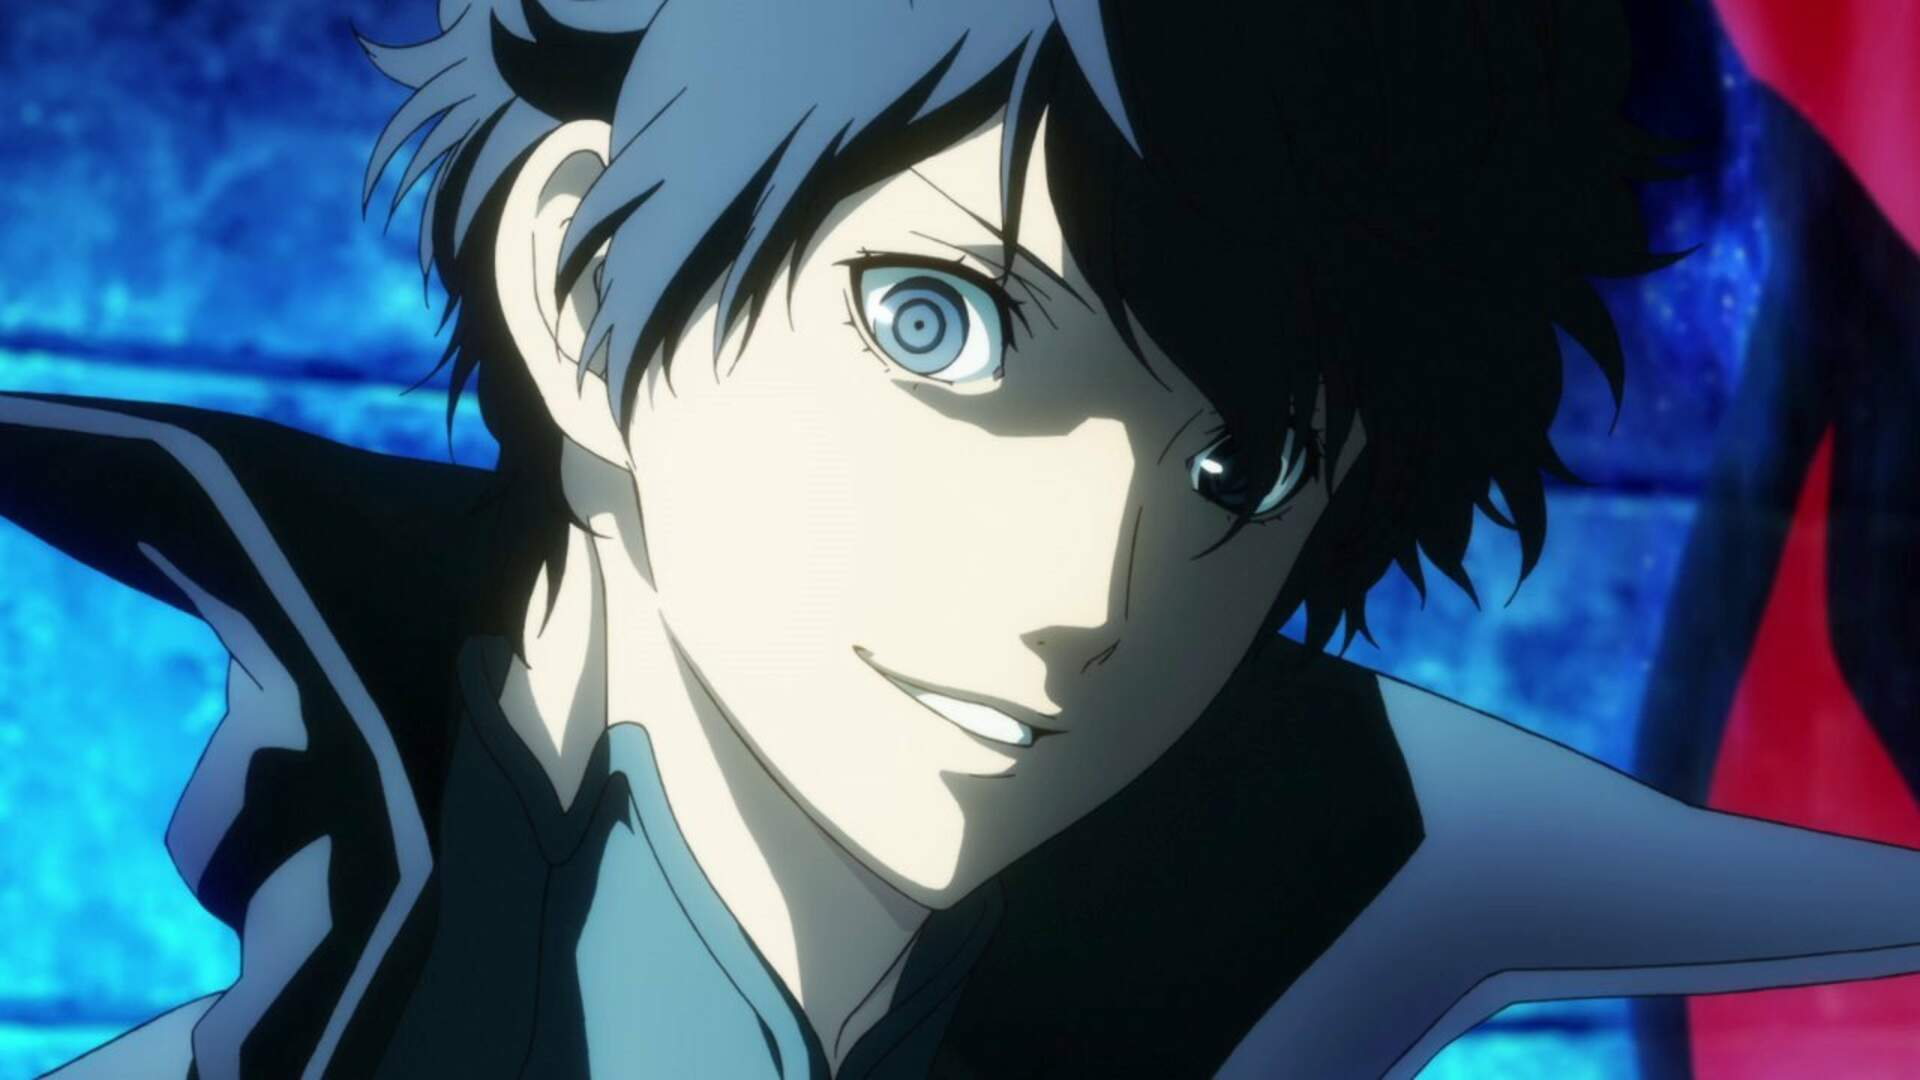 Persona 5 The Royal Is Coming To Playstation 4 But Not The